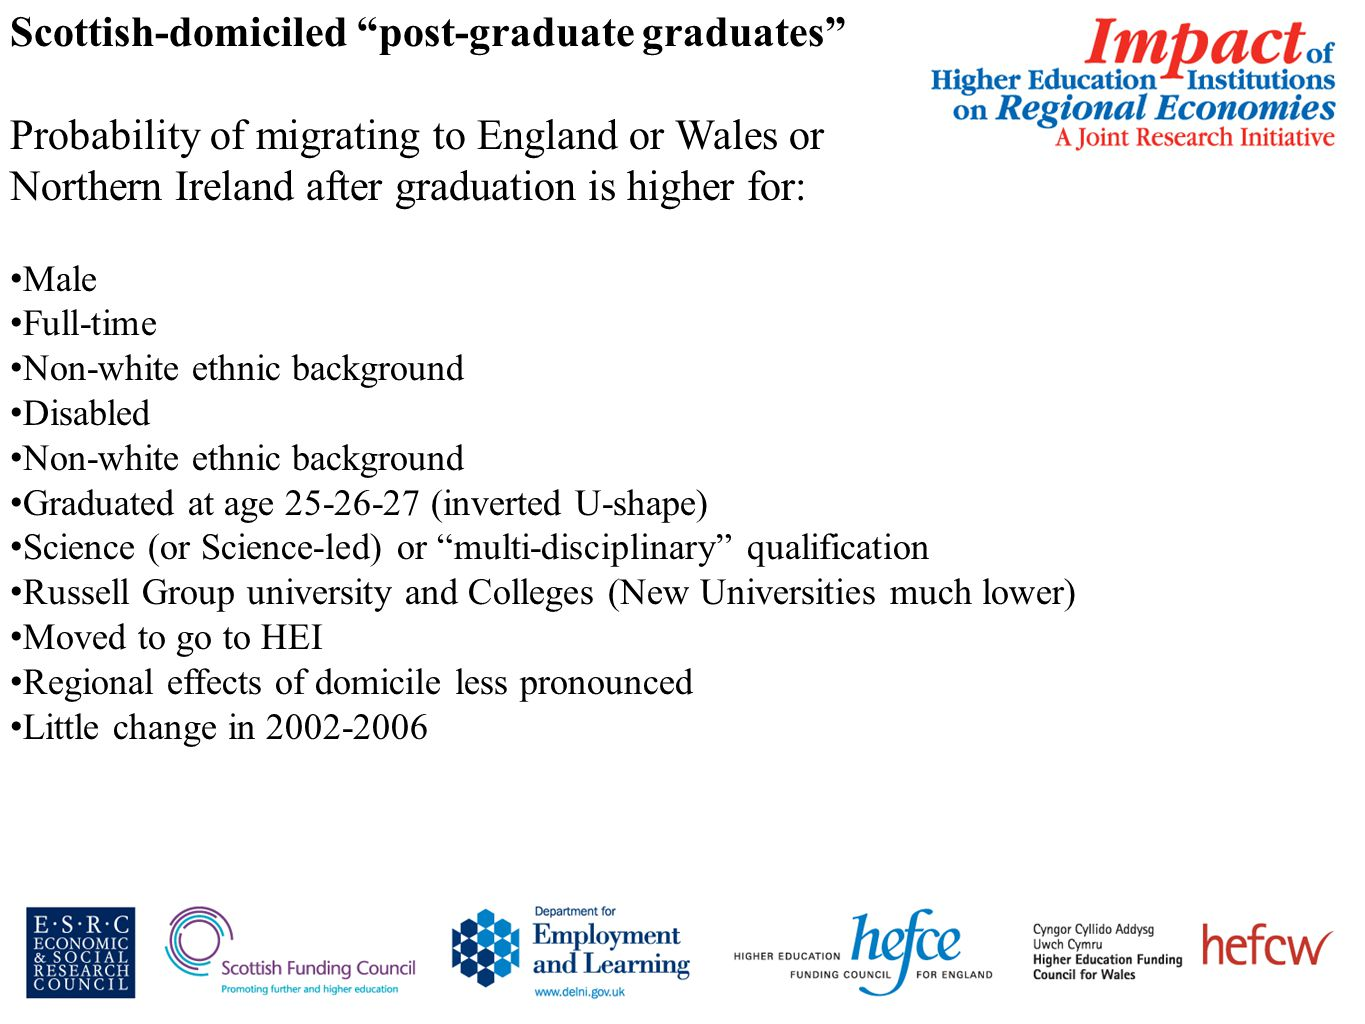 Scottish-domiciled post-graduate graduates Probability of migrating to England or Wales or Northern Ireland after graduation is higher for: Male Full-time Non-white ethnic background Disabled Non-white ethnic background Graduated at age 25-26-27 (inverted U-shape) Science (or Science-led) or multi-disciplinary qualification Russell Group university and Colleges (New Universities much lower) Moved to go to HEI Regional effects of domicile less pronounced Little change in 2002-2006